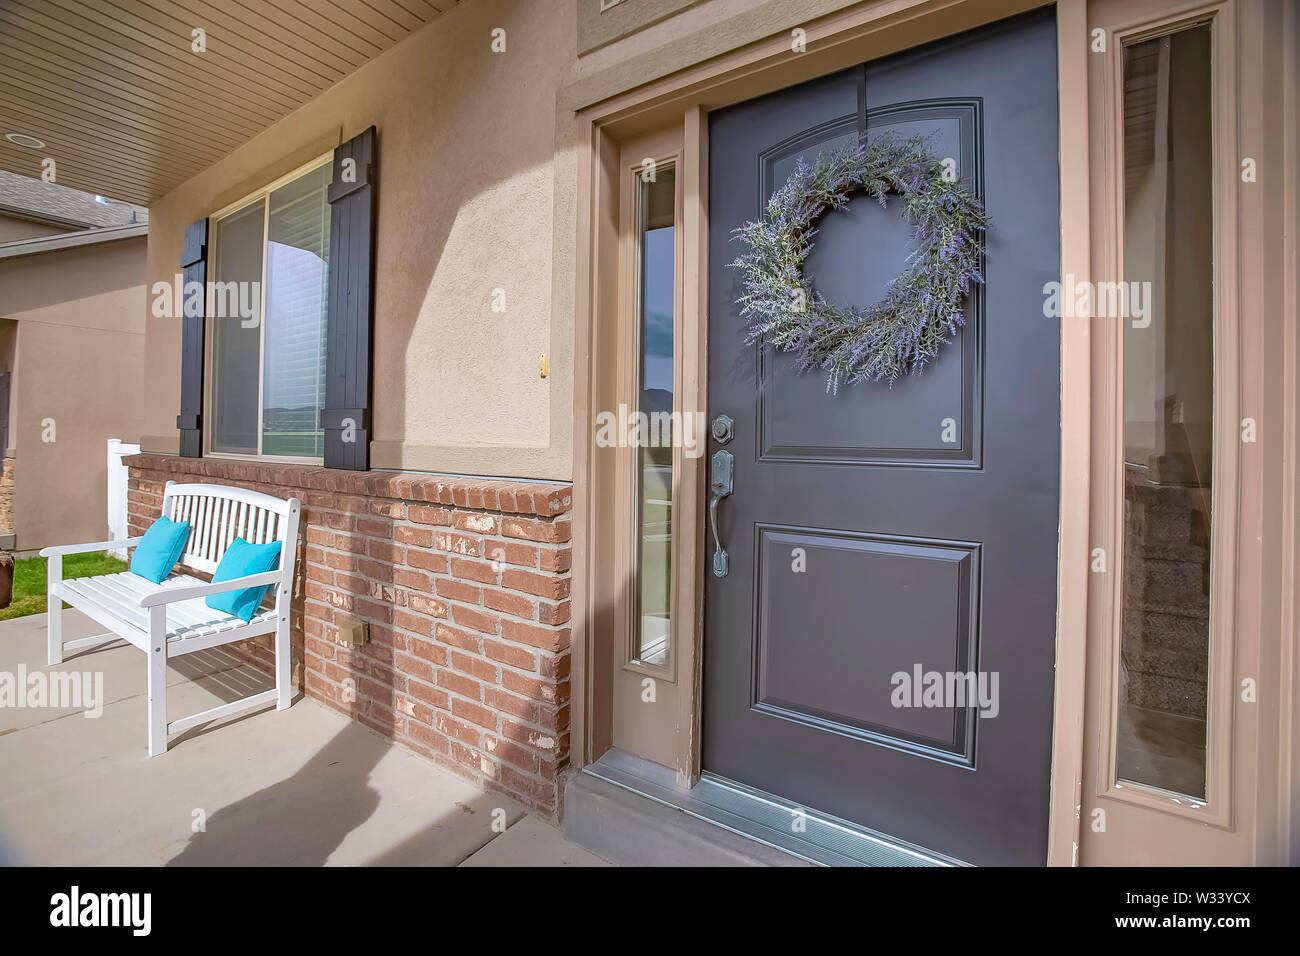 Porch And Front Door With Wreath And Sidelights Viewed On A